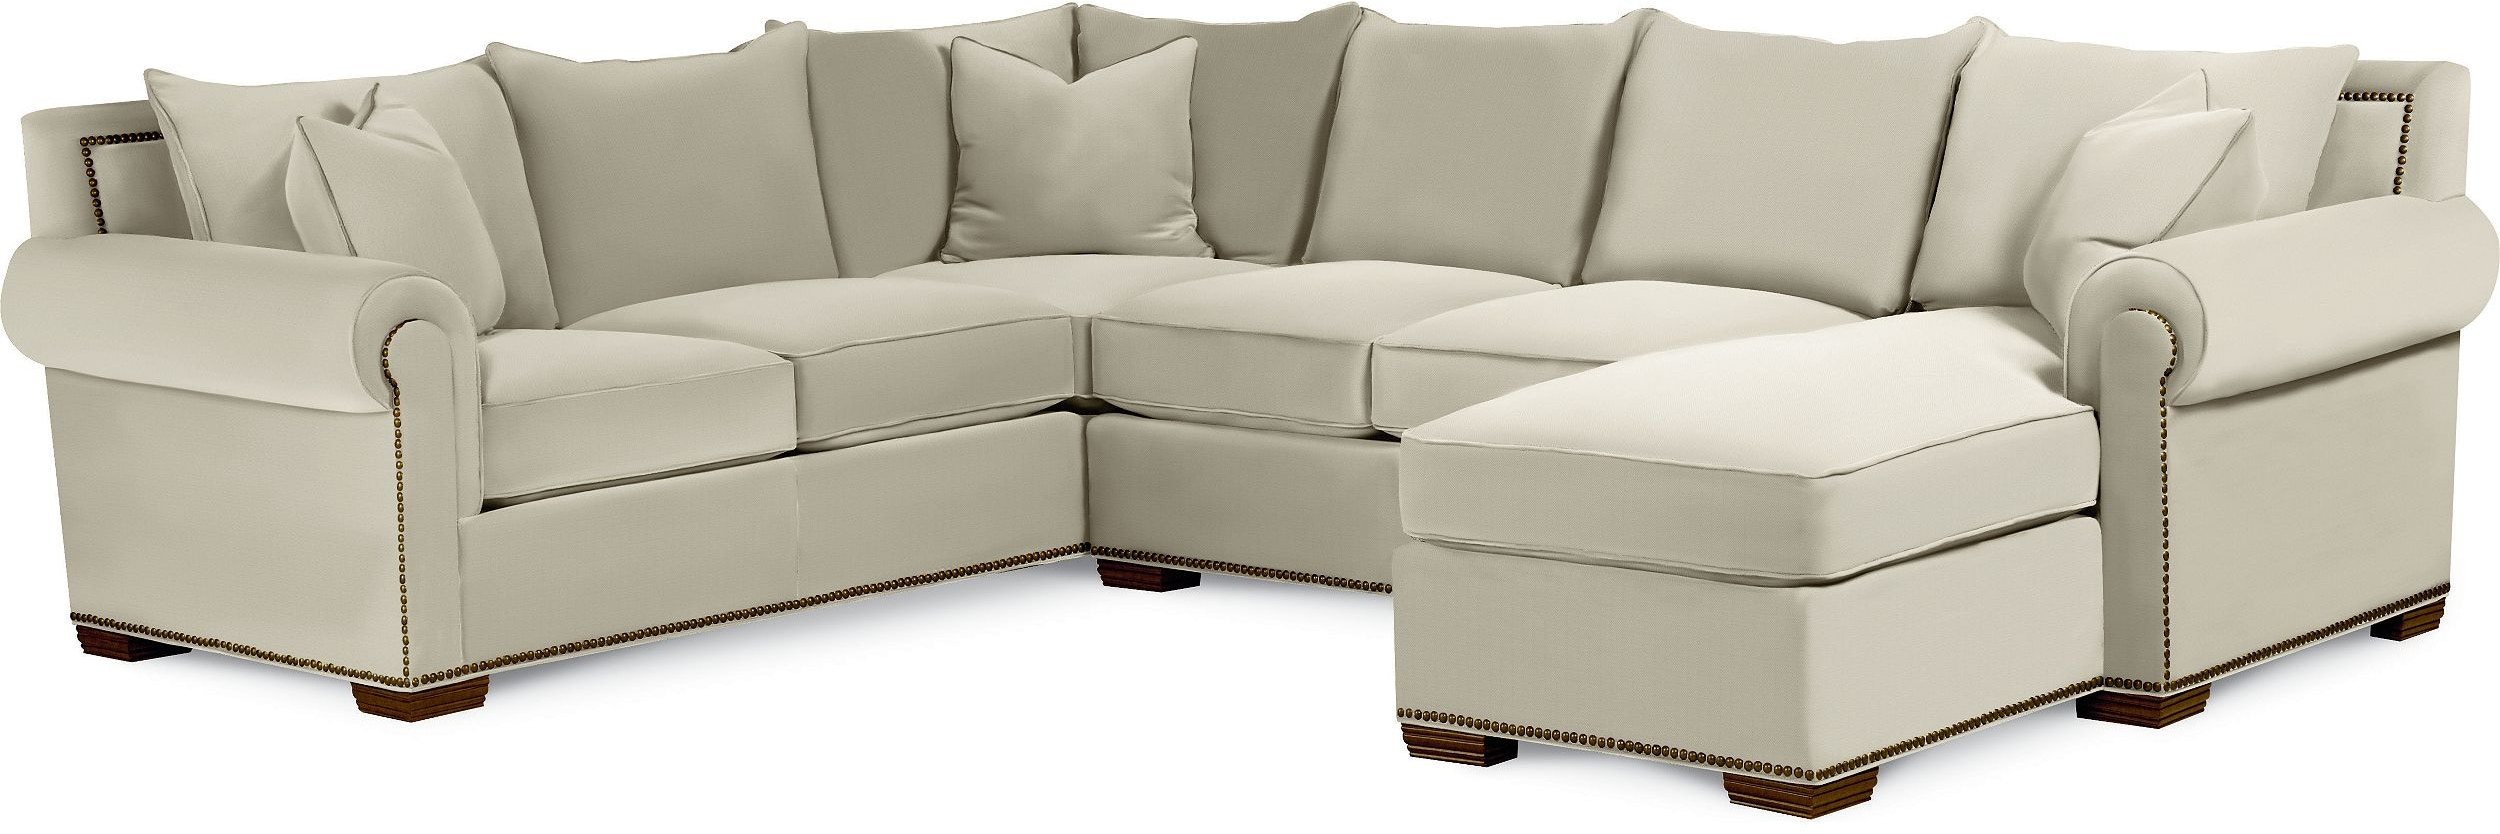 Thomasville Furniture Living Room Fremont Sectional 1658 SECT